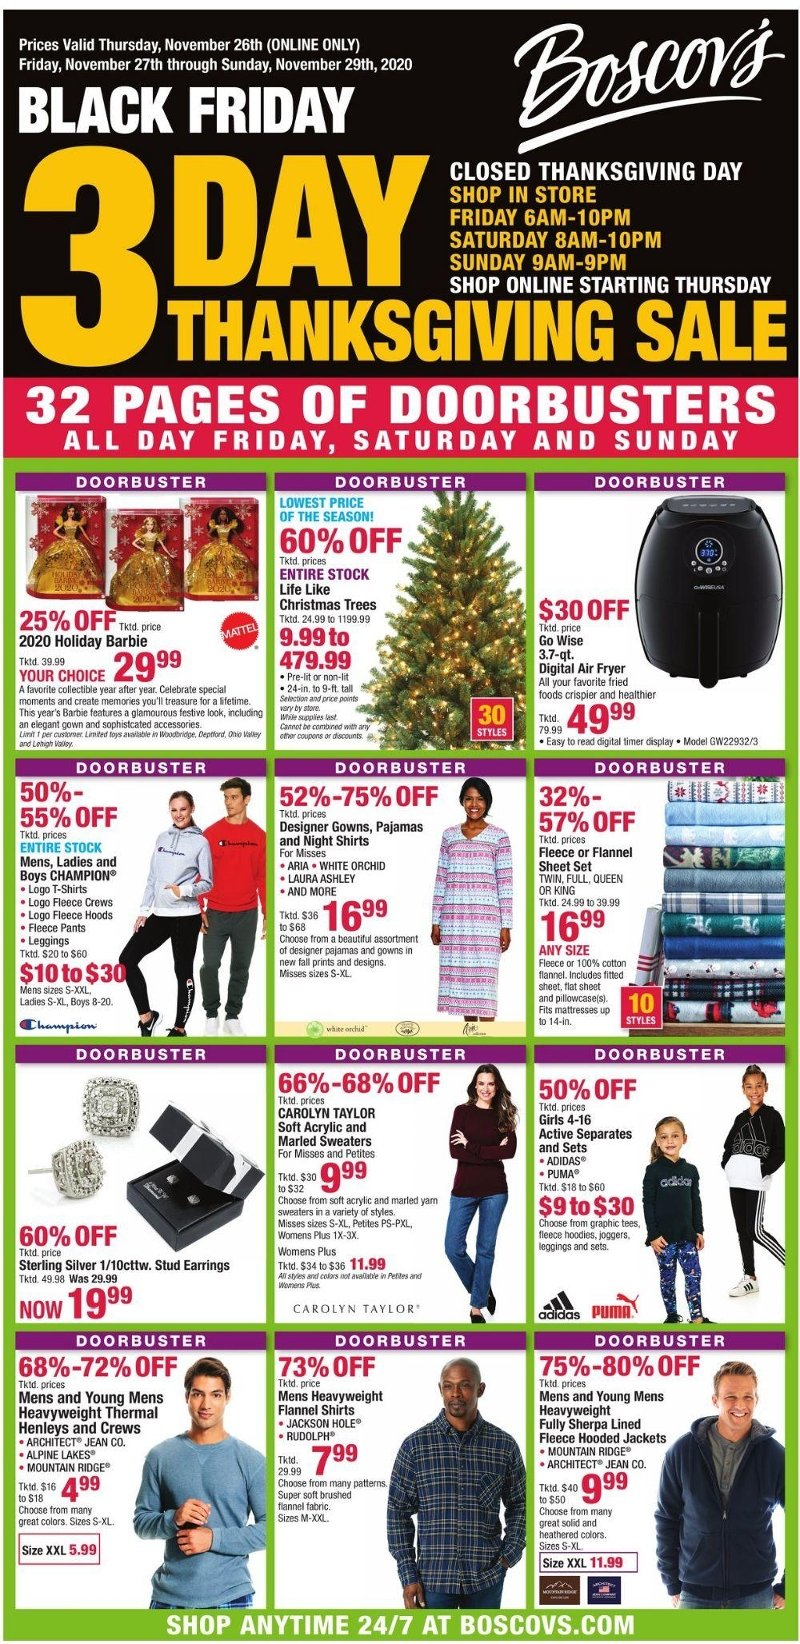 Boscov's Black Friday 2020 Page 1